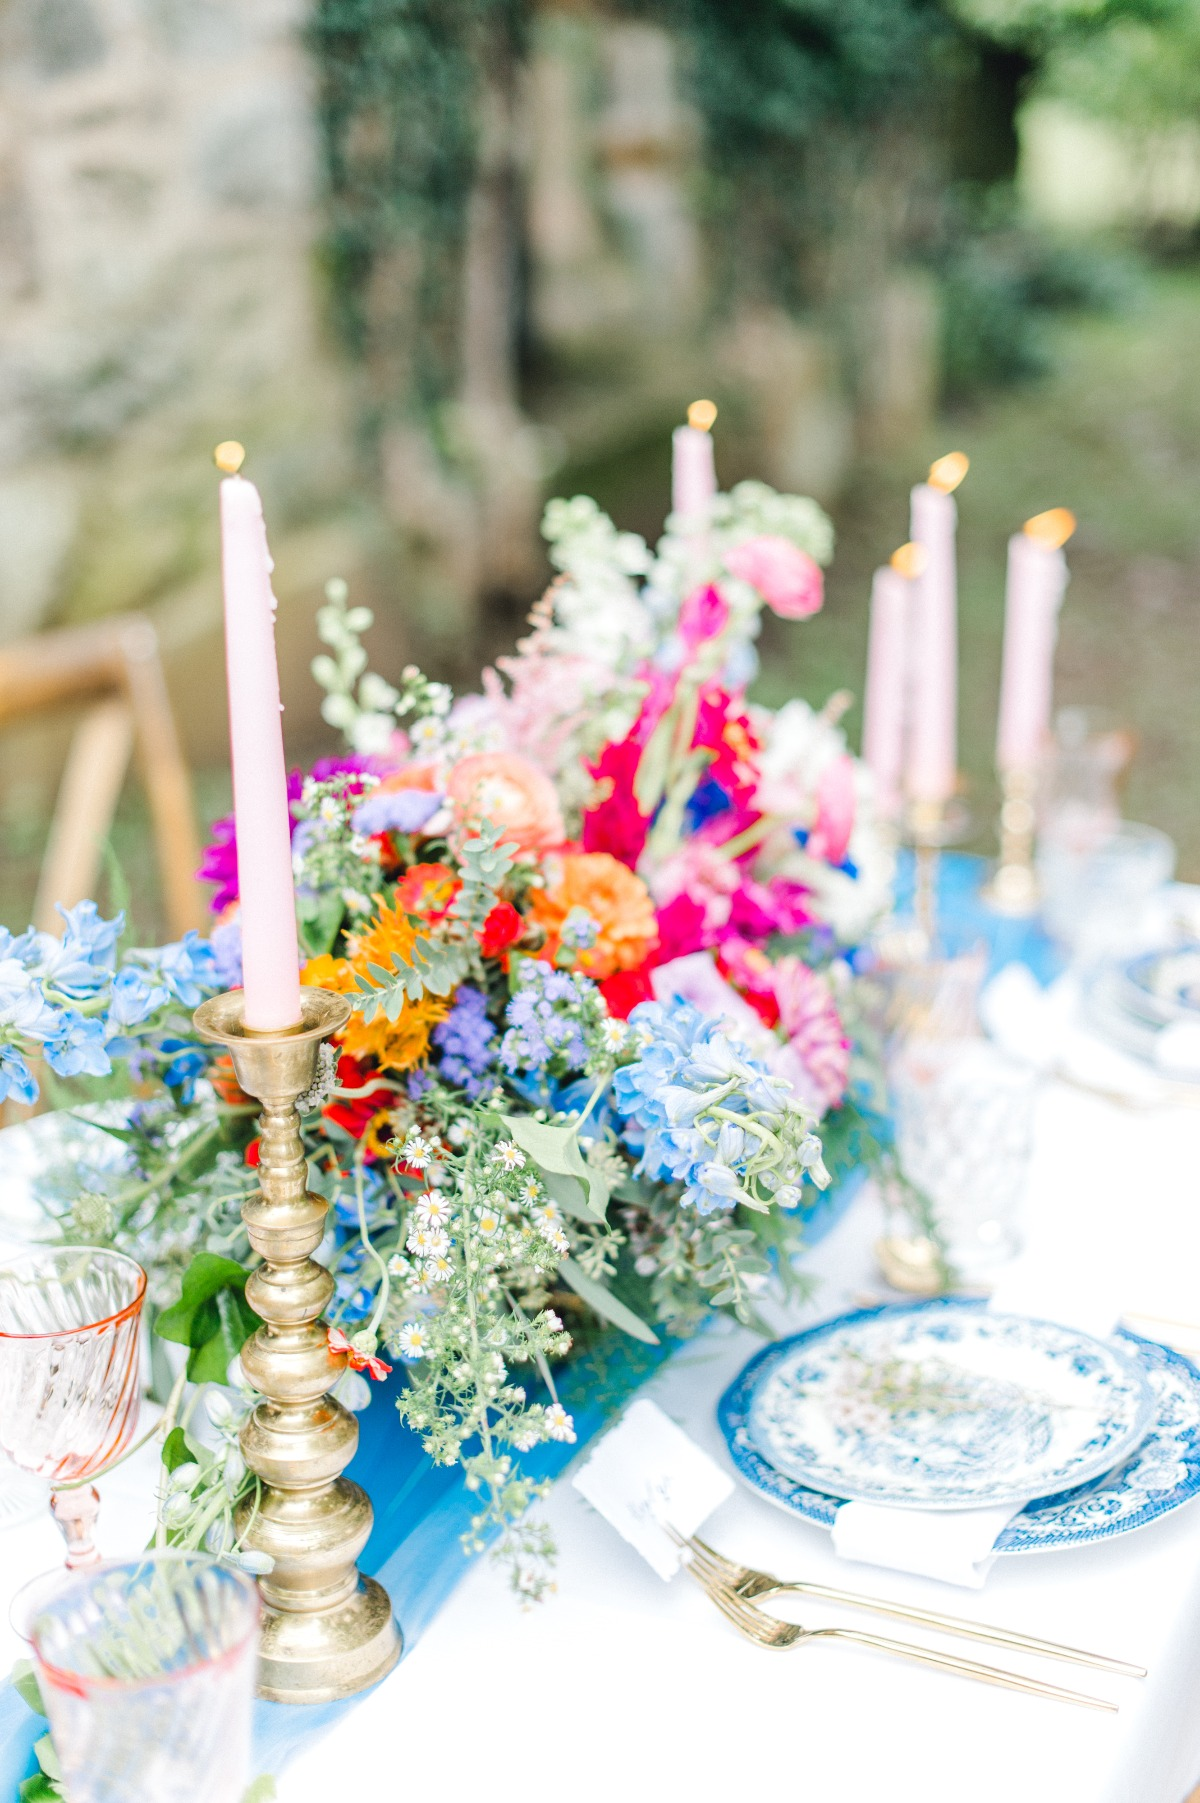 Colorful floral wedding centerpiece